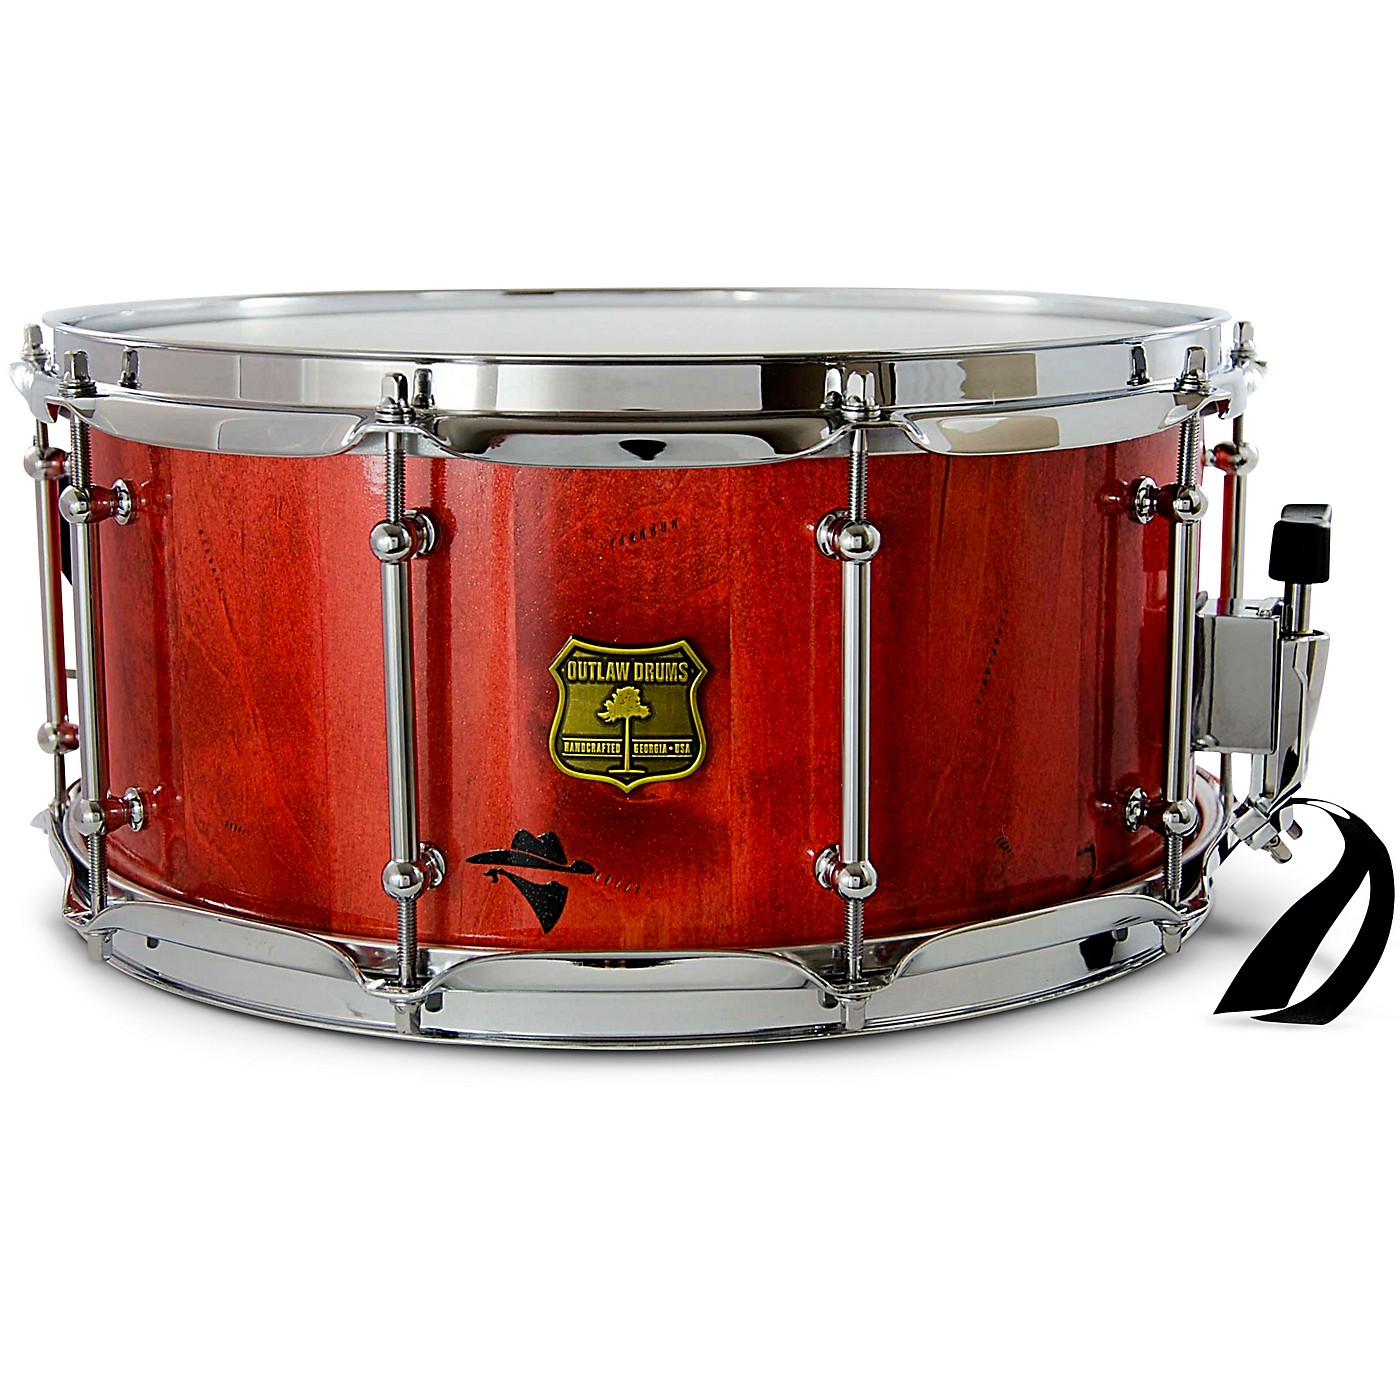 OUTLAW DRUMS Bandit Series Snare Drum with Chrome Hardware thumbnail